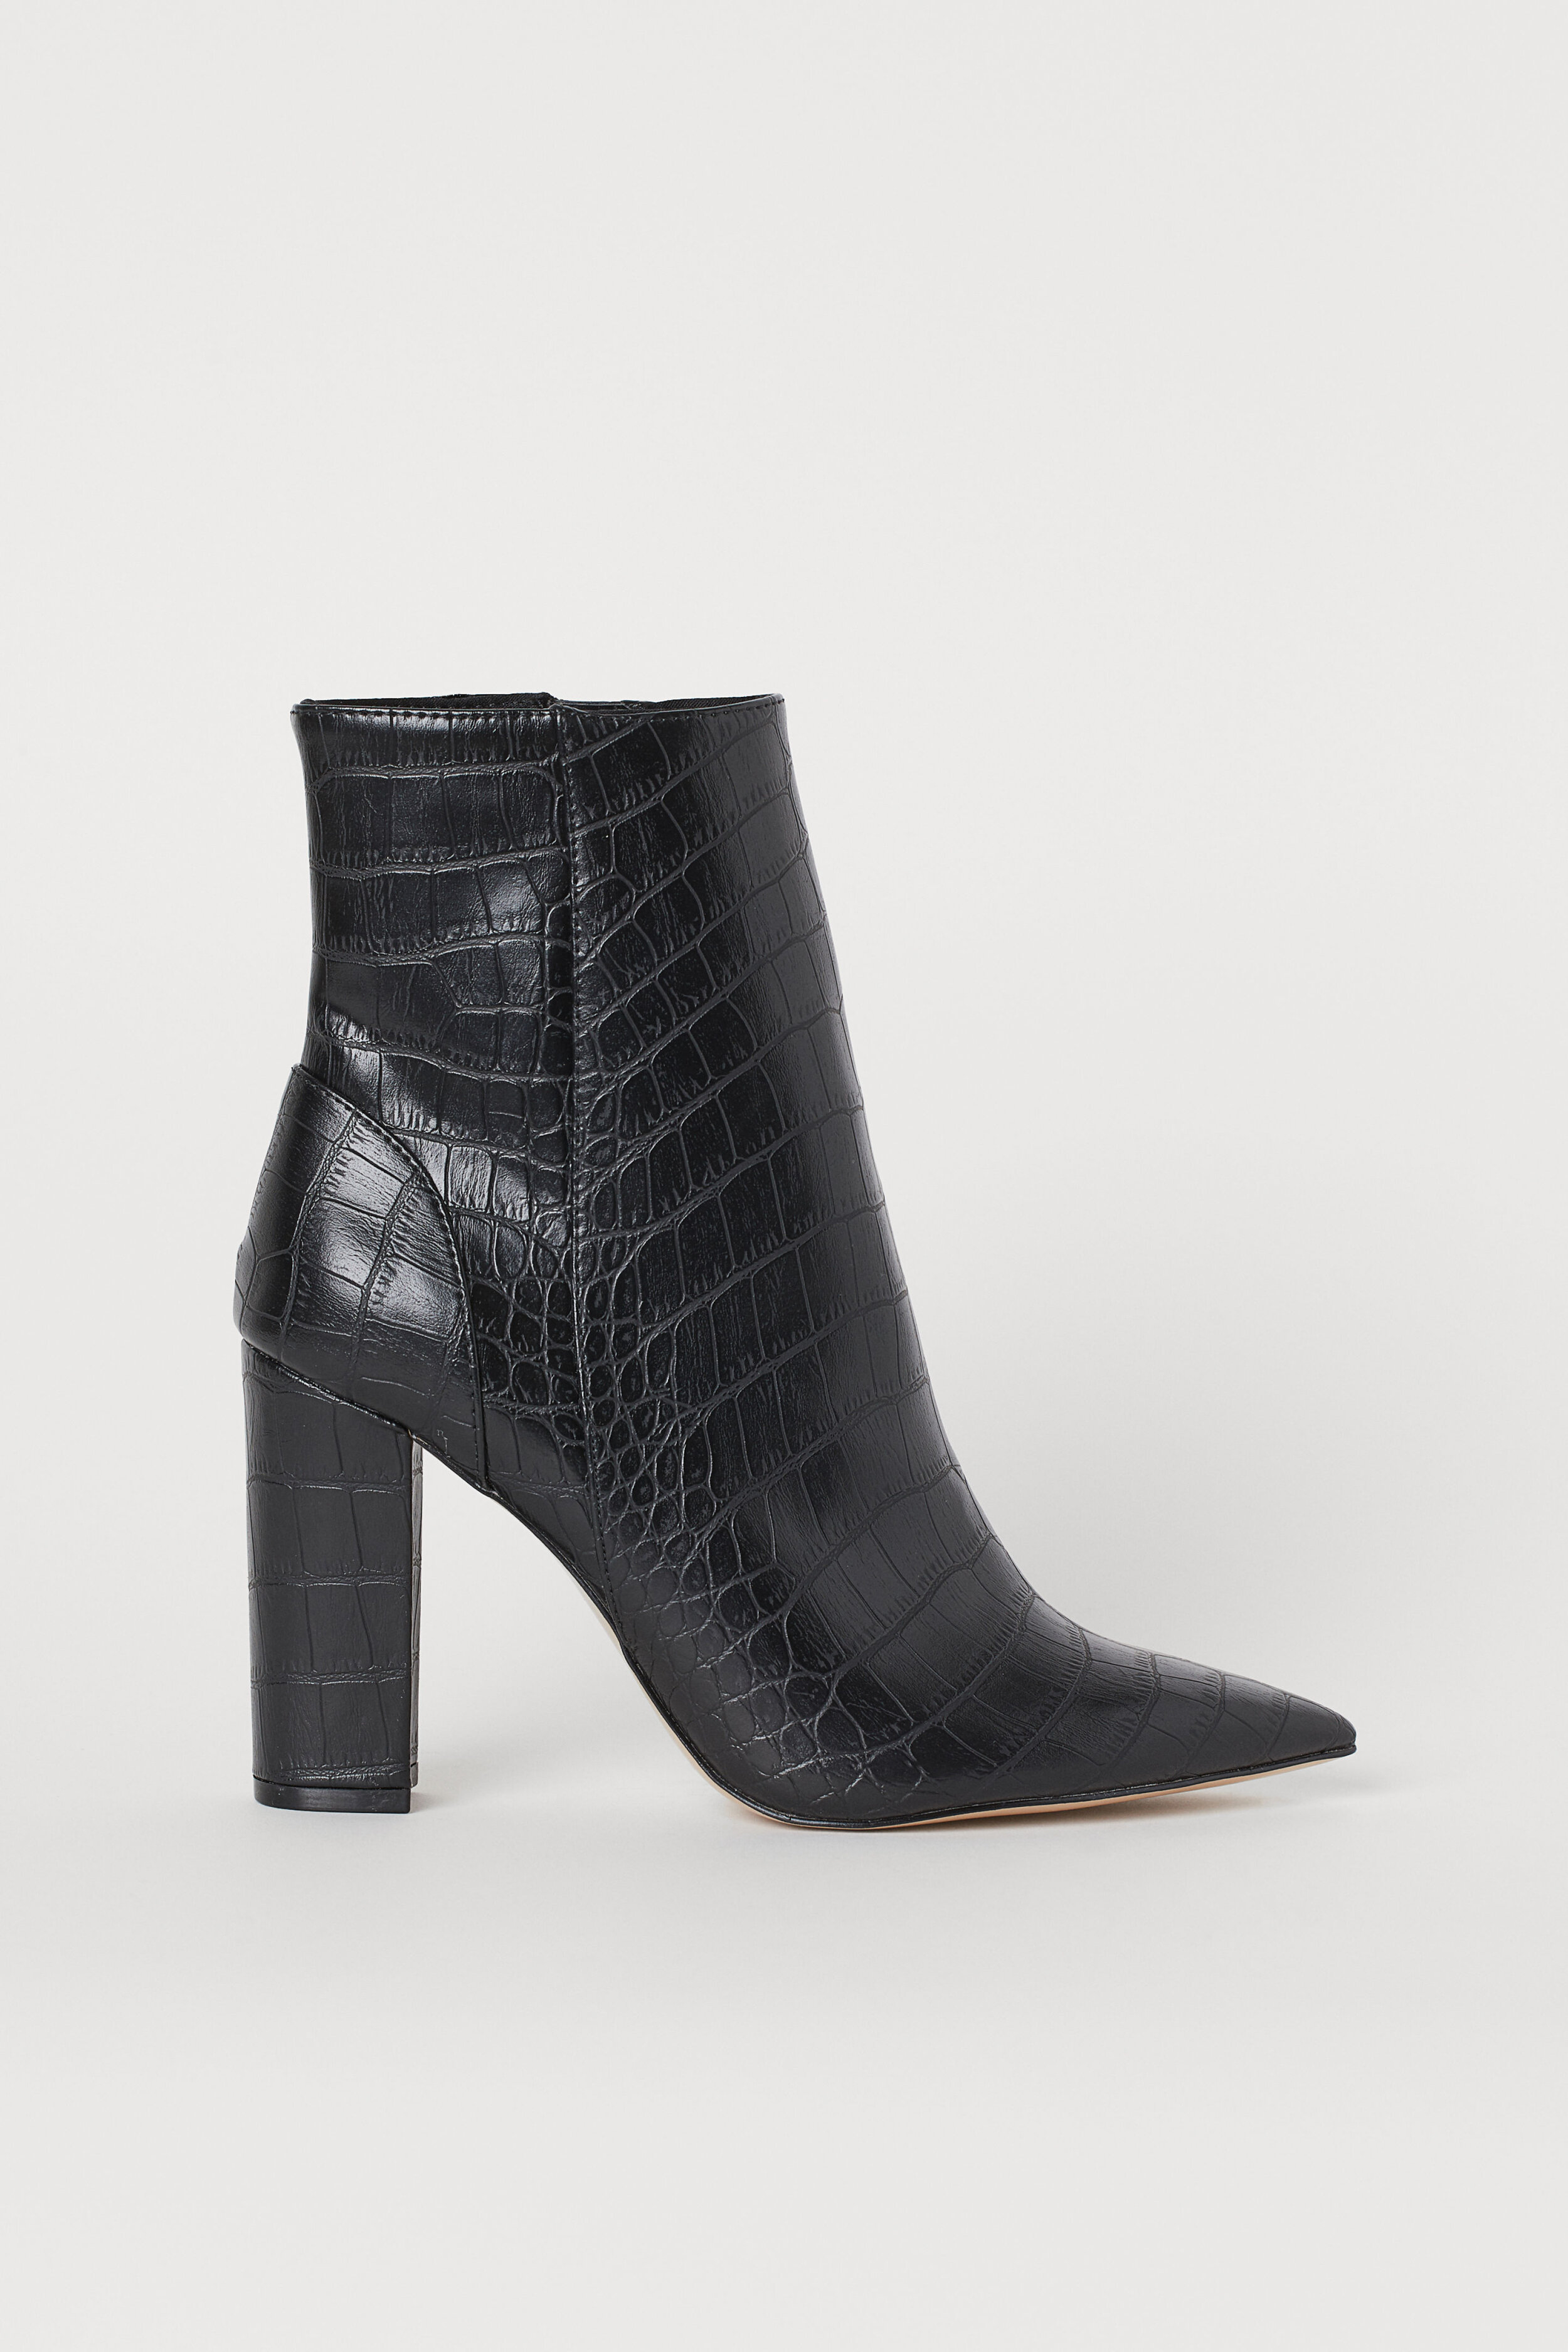 HM CROCADILE PATTERN ANKLE BOOTS 39.99.jpg